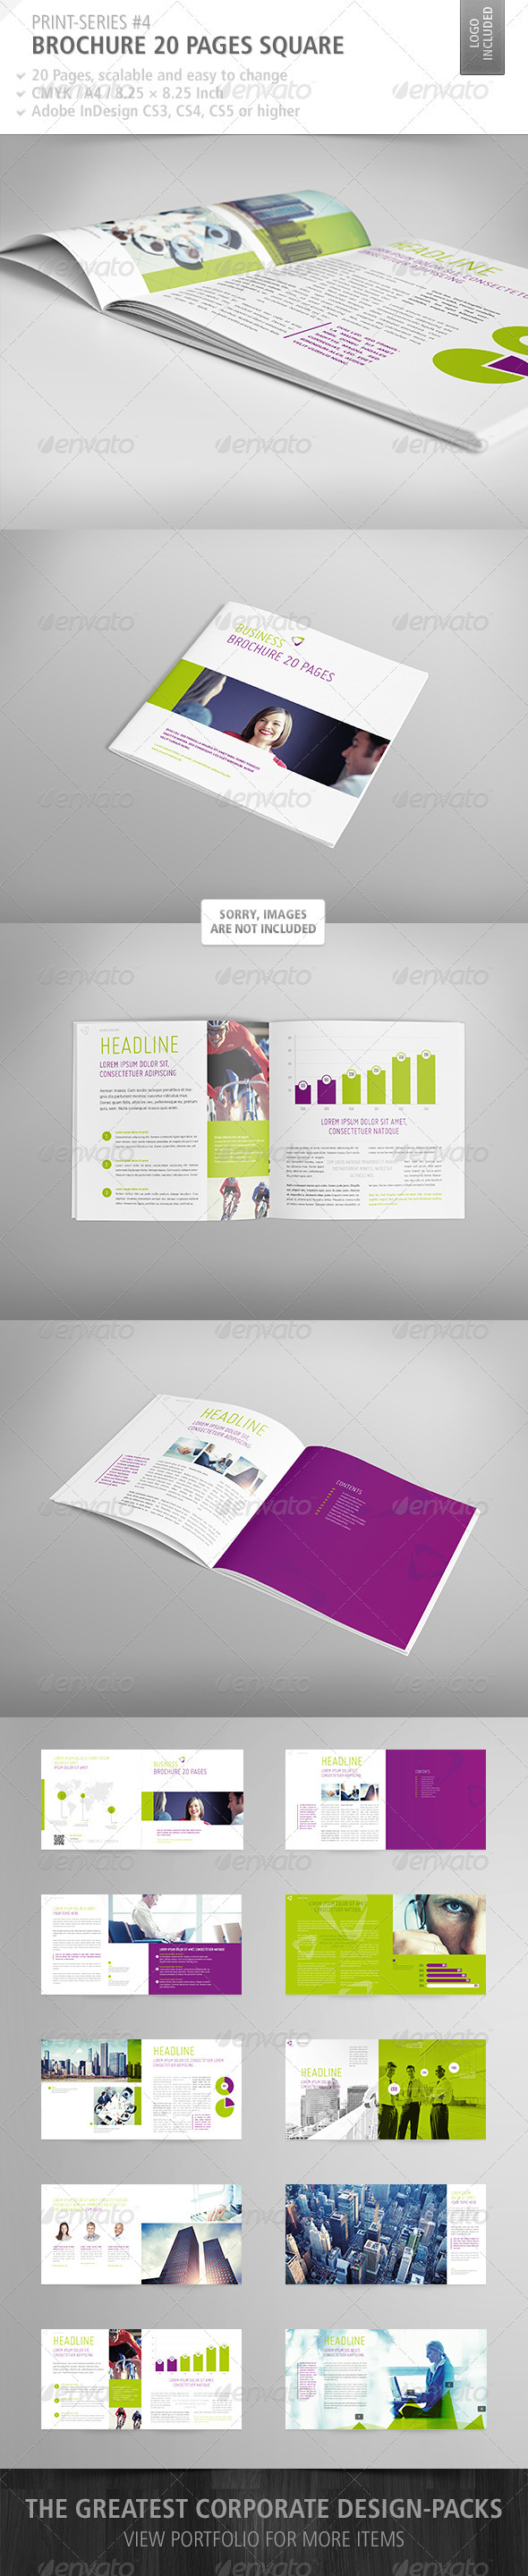 GraphicRiver Brochure Square 20 Pages Print-Series #4 3928309